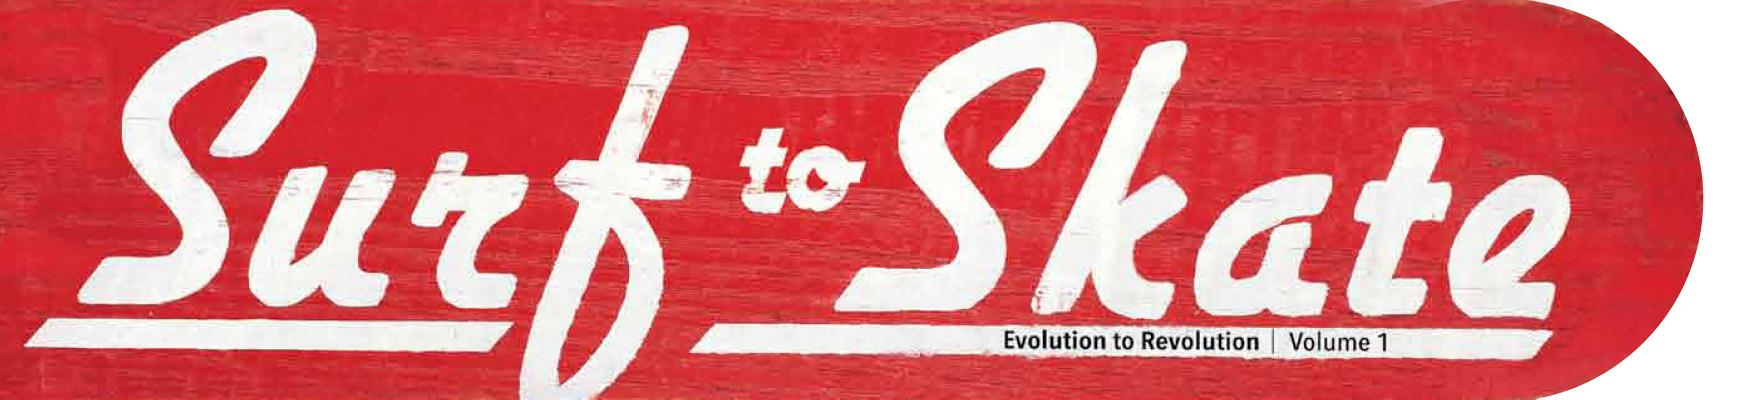 SURF TO SKATE VOL. 1: EVOLUTION TO REVOLUTION, HARTSFIELD, STANTON